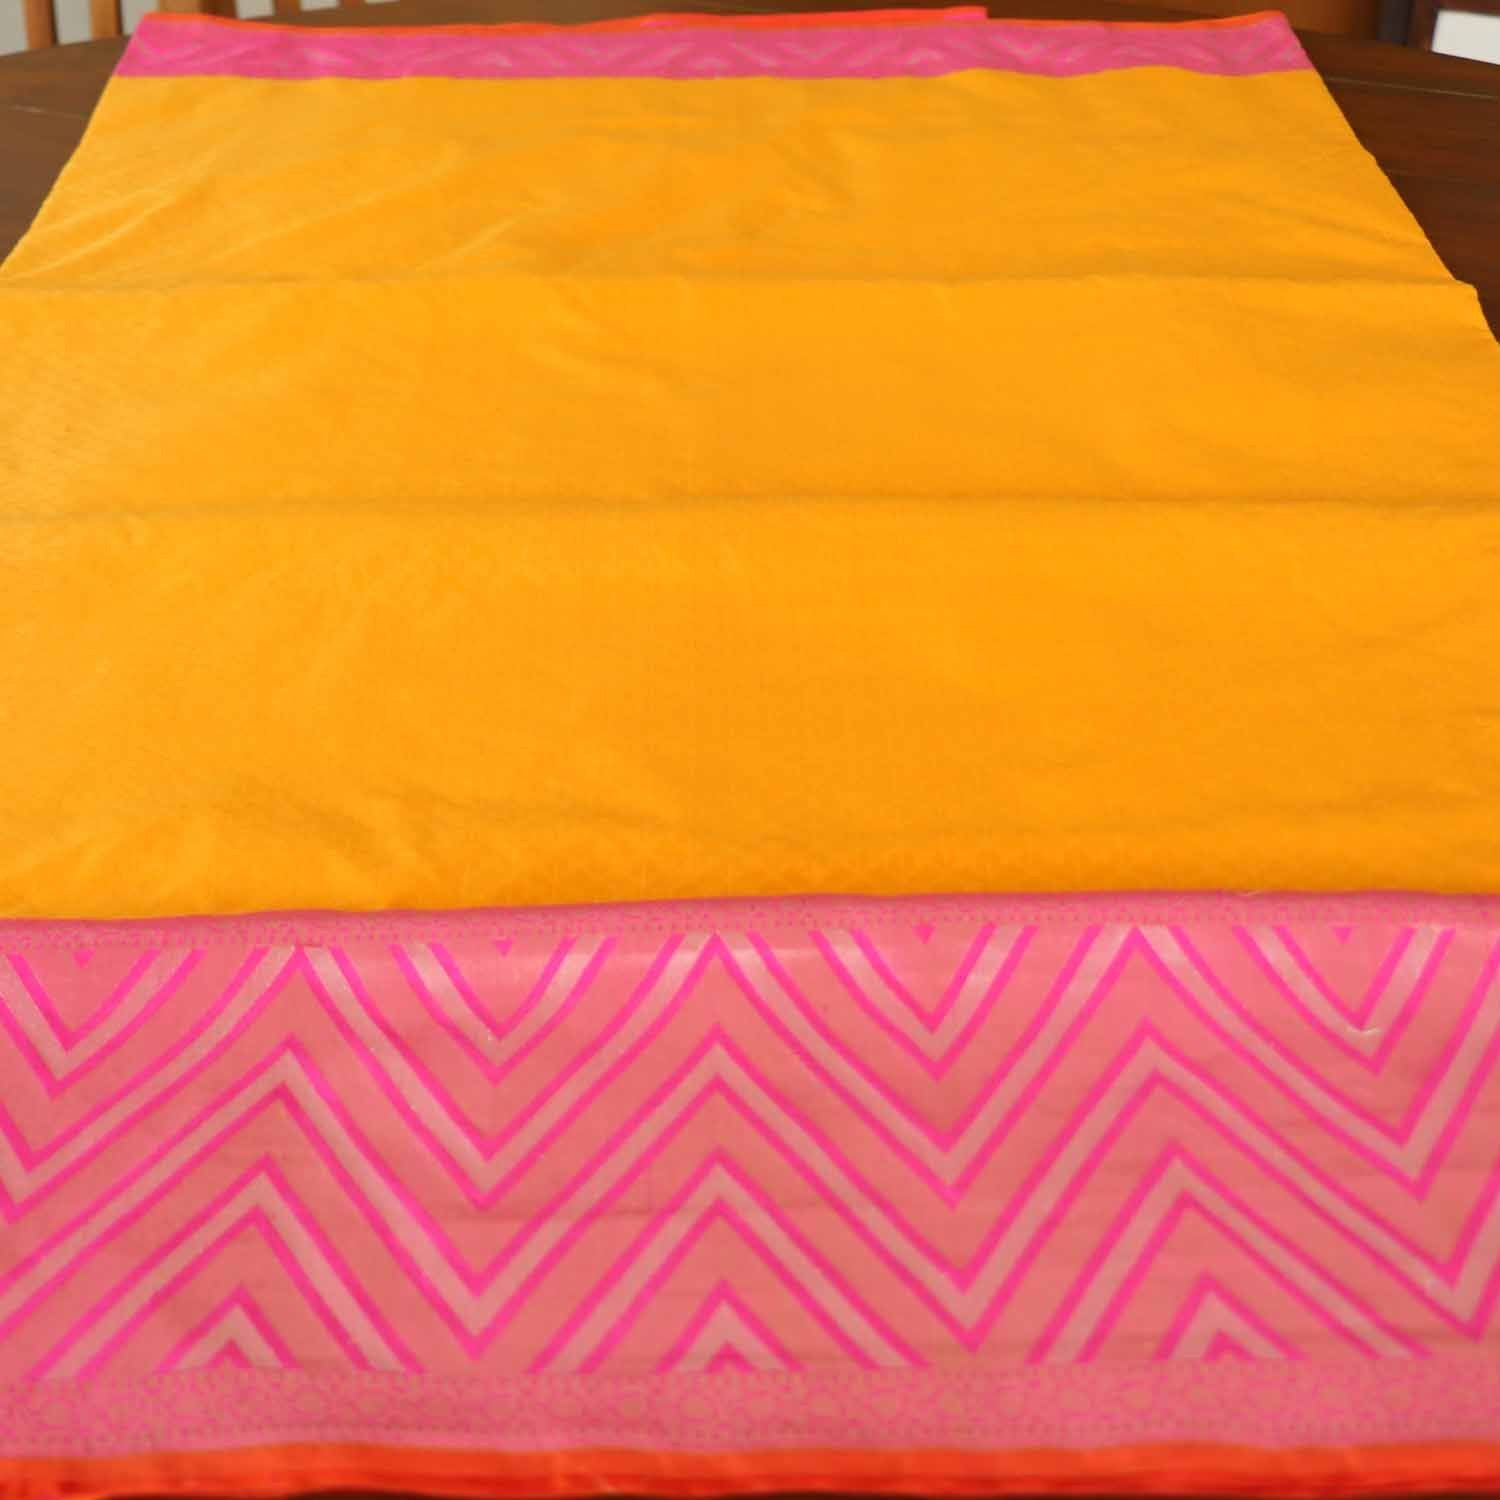 Yellow-Indian Pink Pure Katan Silk Banarasi Handloom Saree - Tilfi - 3